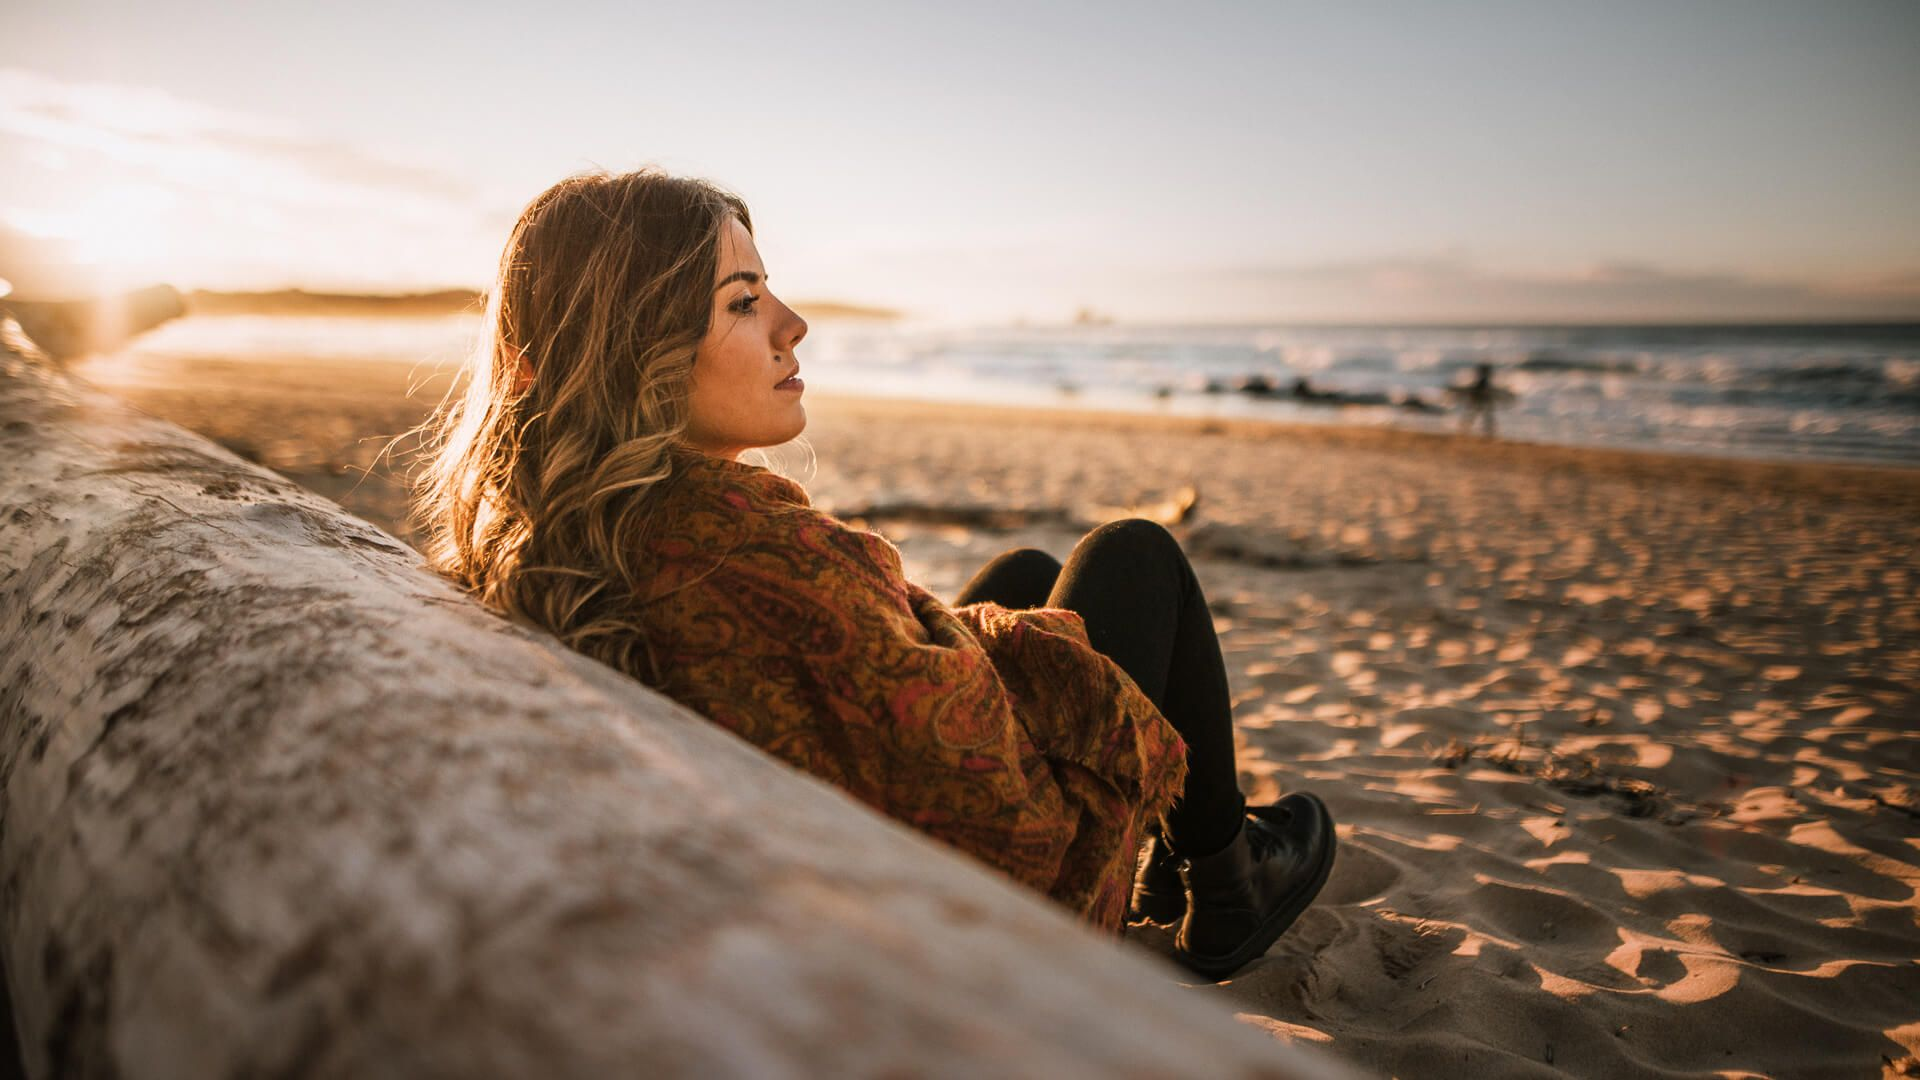 Young woman sitting by a beach at sunset in winter.